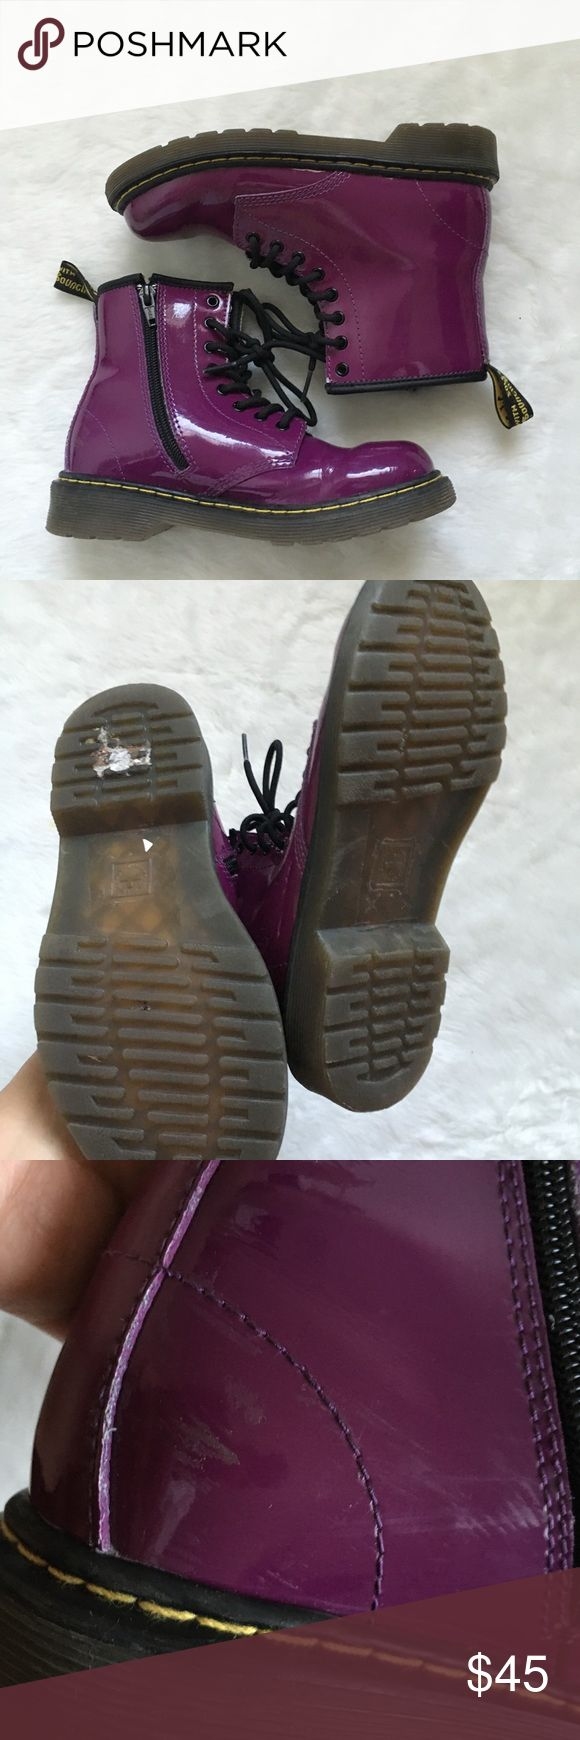 KIDS Dr. Martens Delaney Purple Boots 2 Does not include the original box.  Patent leather.  Lace up or side zipper entry.  Good condition with signs of wear.  Scuff on the inner side near the zippers Dr. Martens Shoes Boots